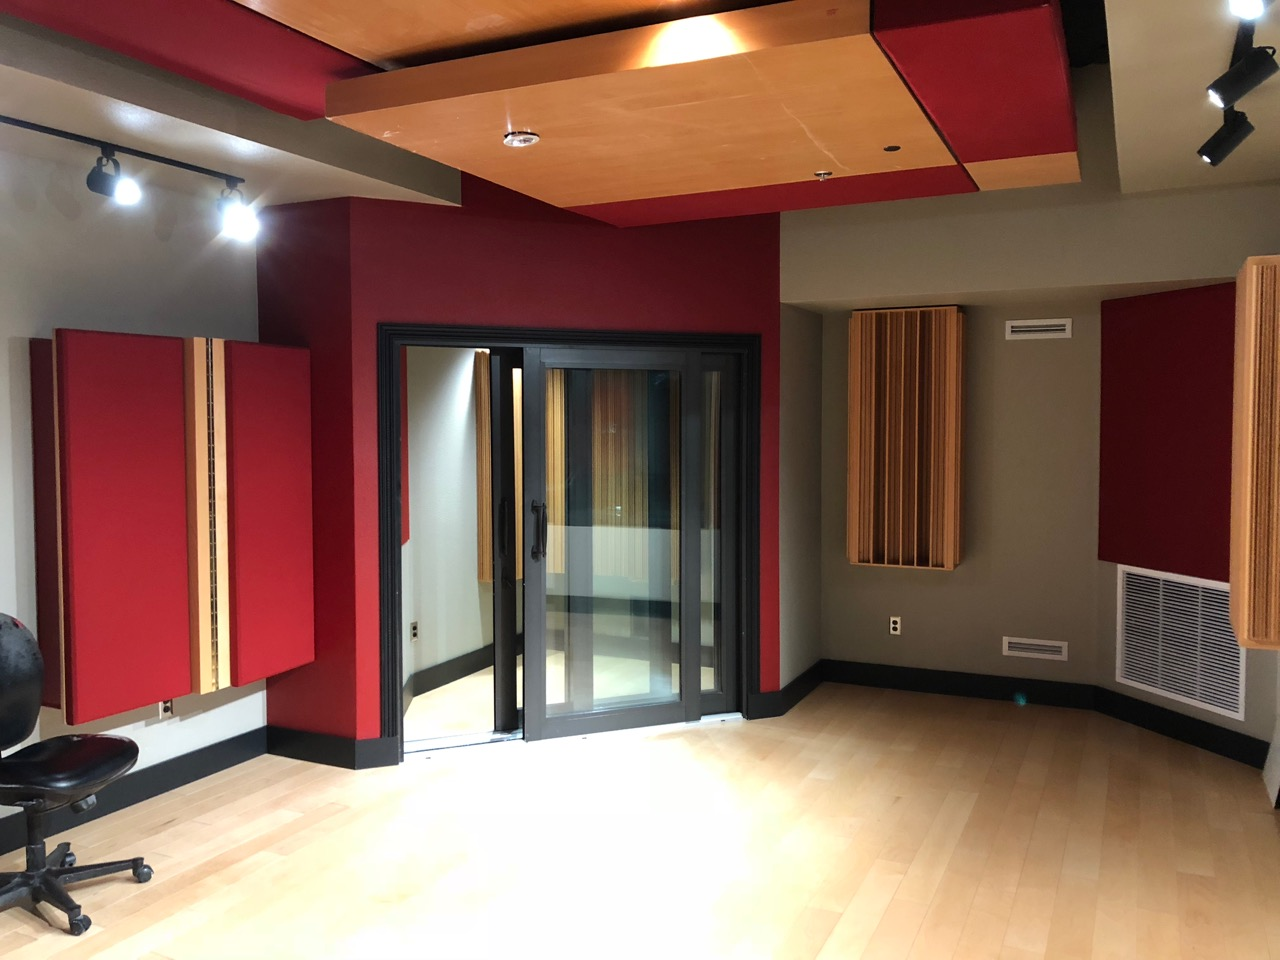 ... Institute Of Las Vegas. The Sound Panels And Other Acoustical Items Are  Being Installed, As Well As The Other Finishing Touches, Ready For AI To  Install ...